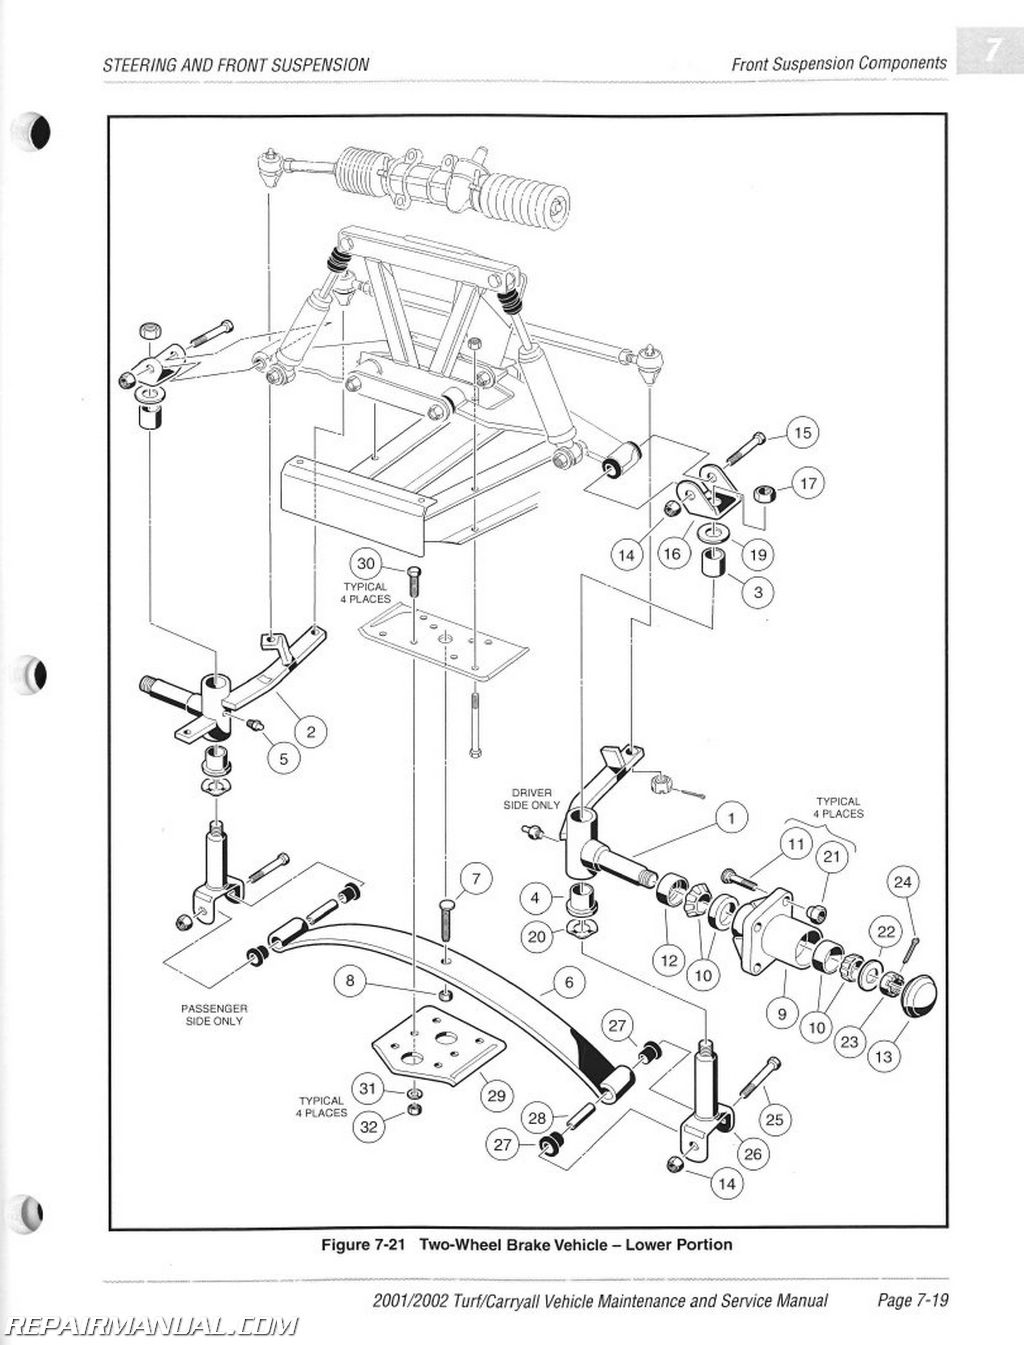 Club Car Carryall 2 Parts Diagram Wiring Diagram For Light Switch \u2022 97 Club  Car